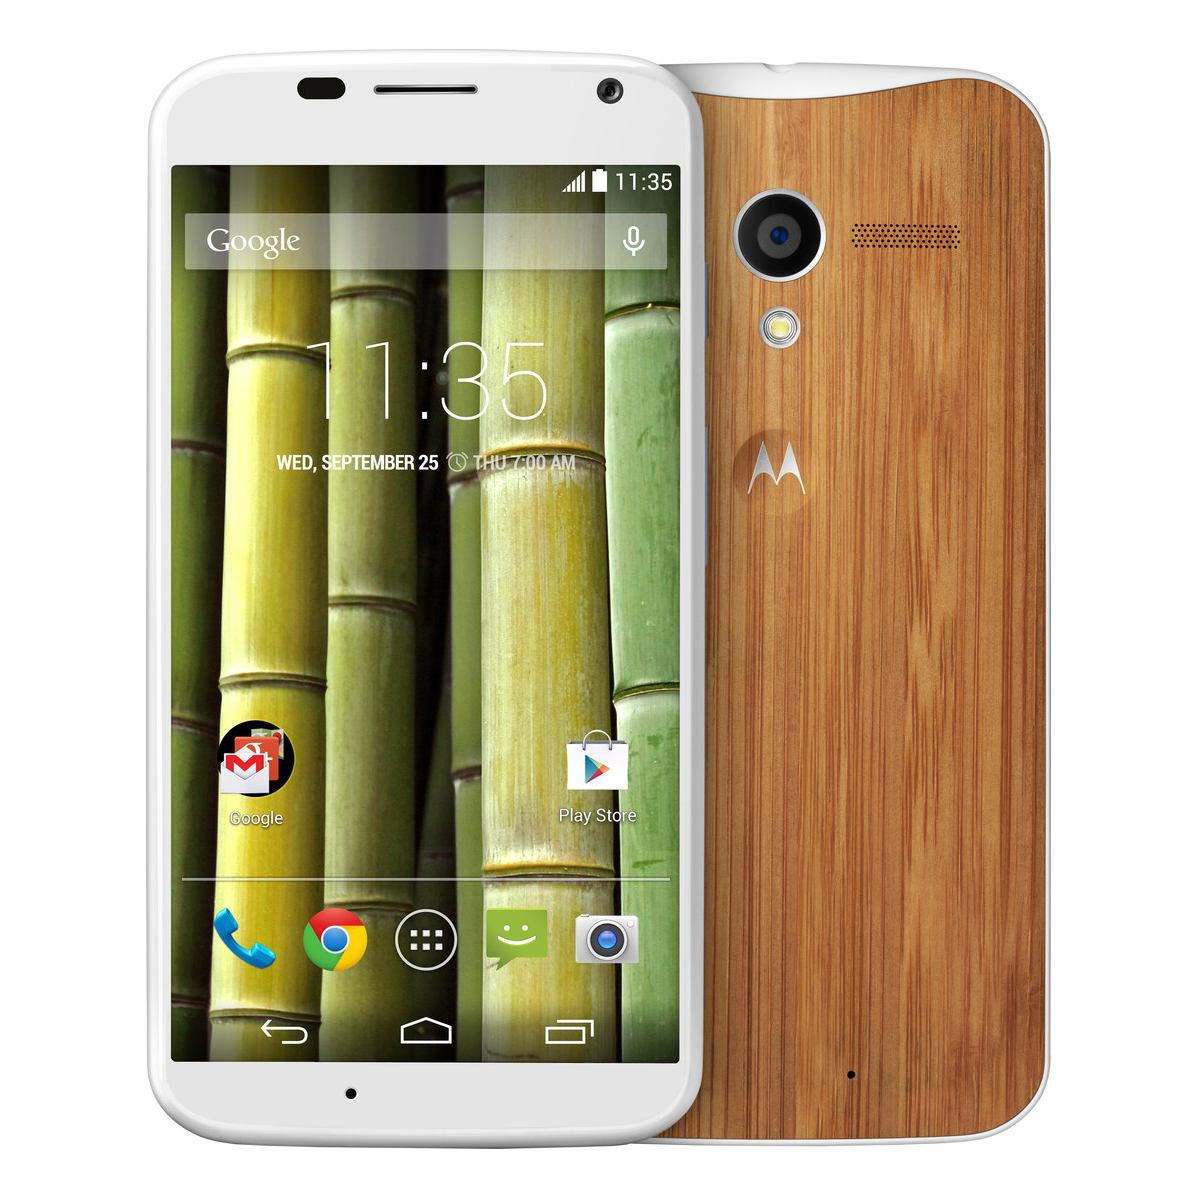 Motorola Moto X 32GB for ATT Wireless in White